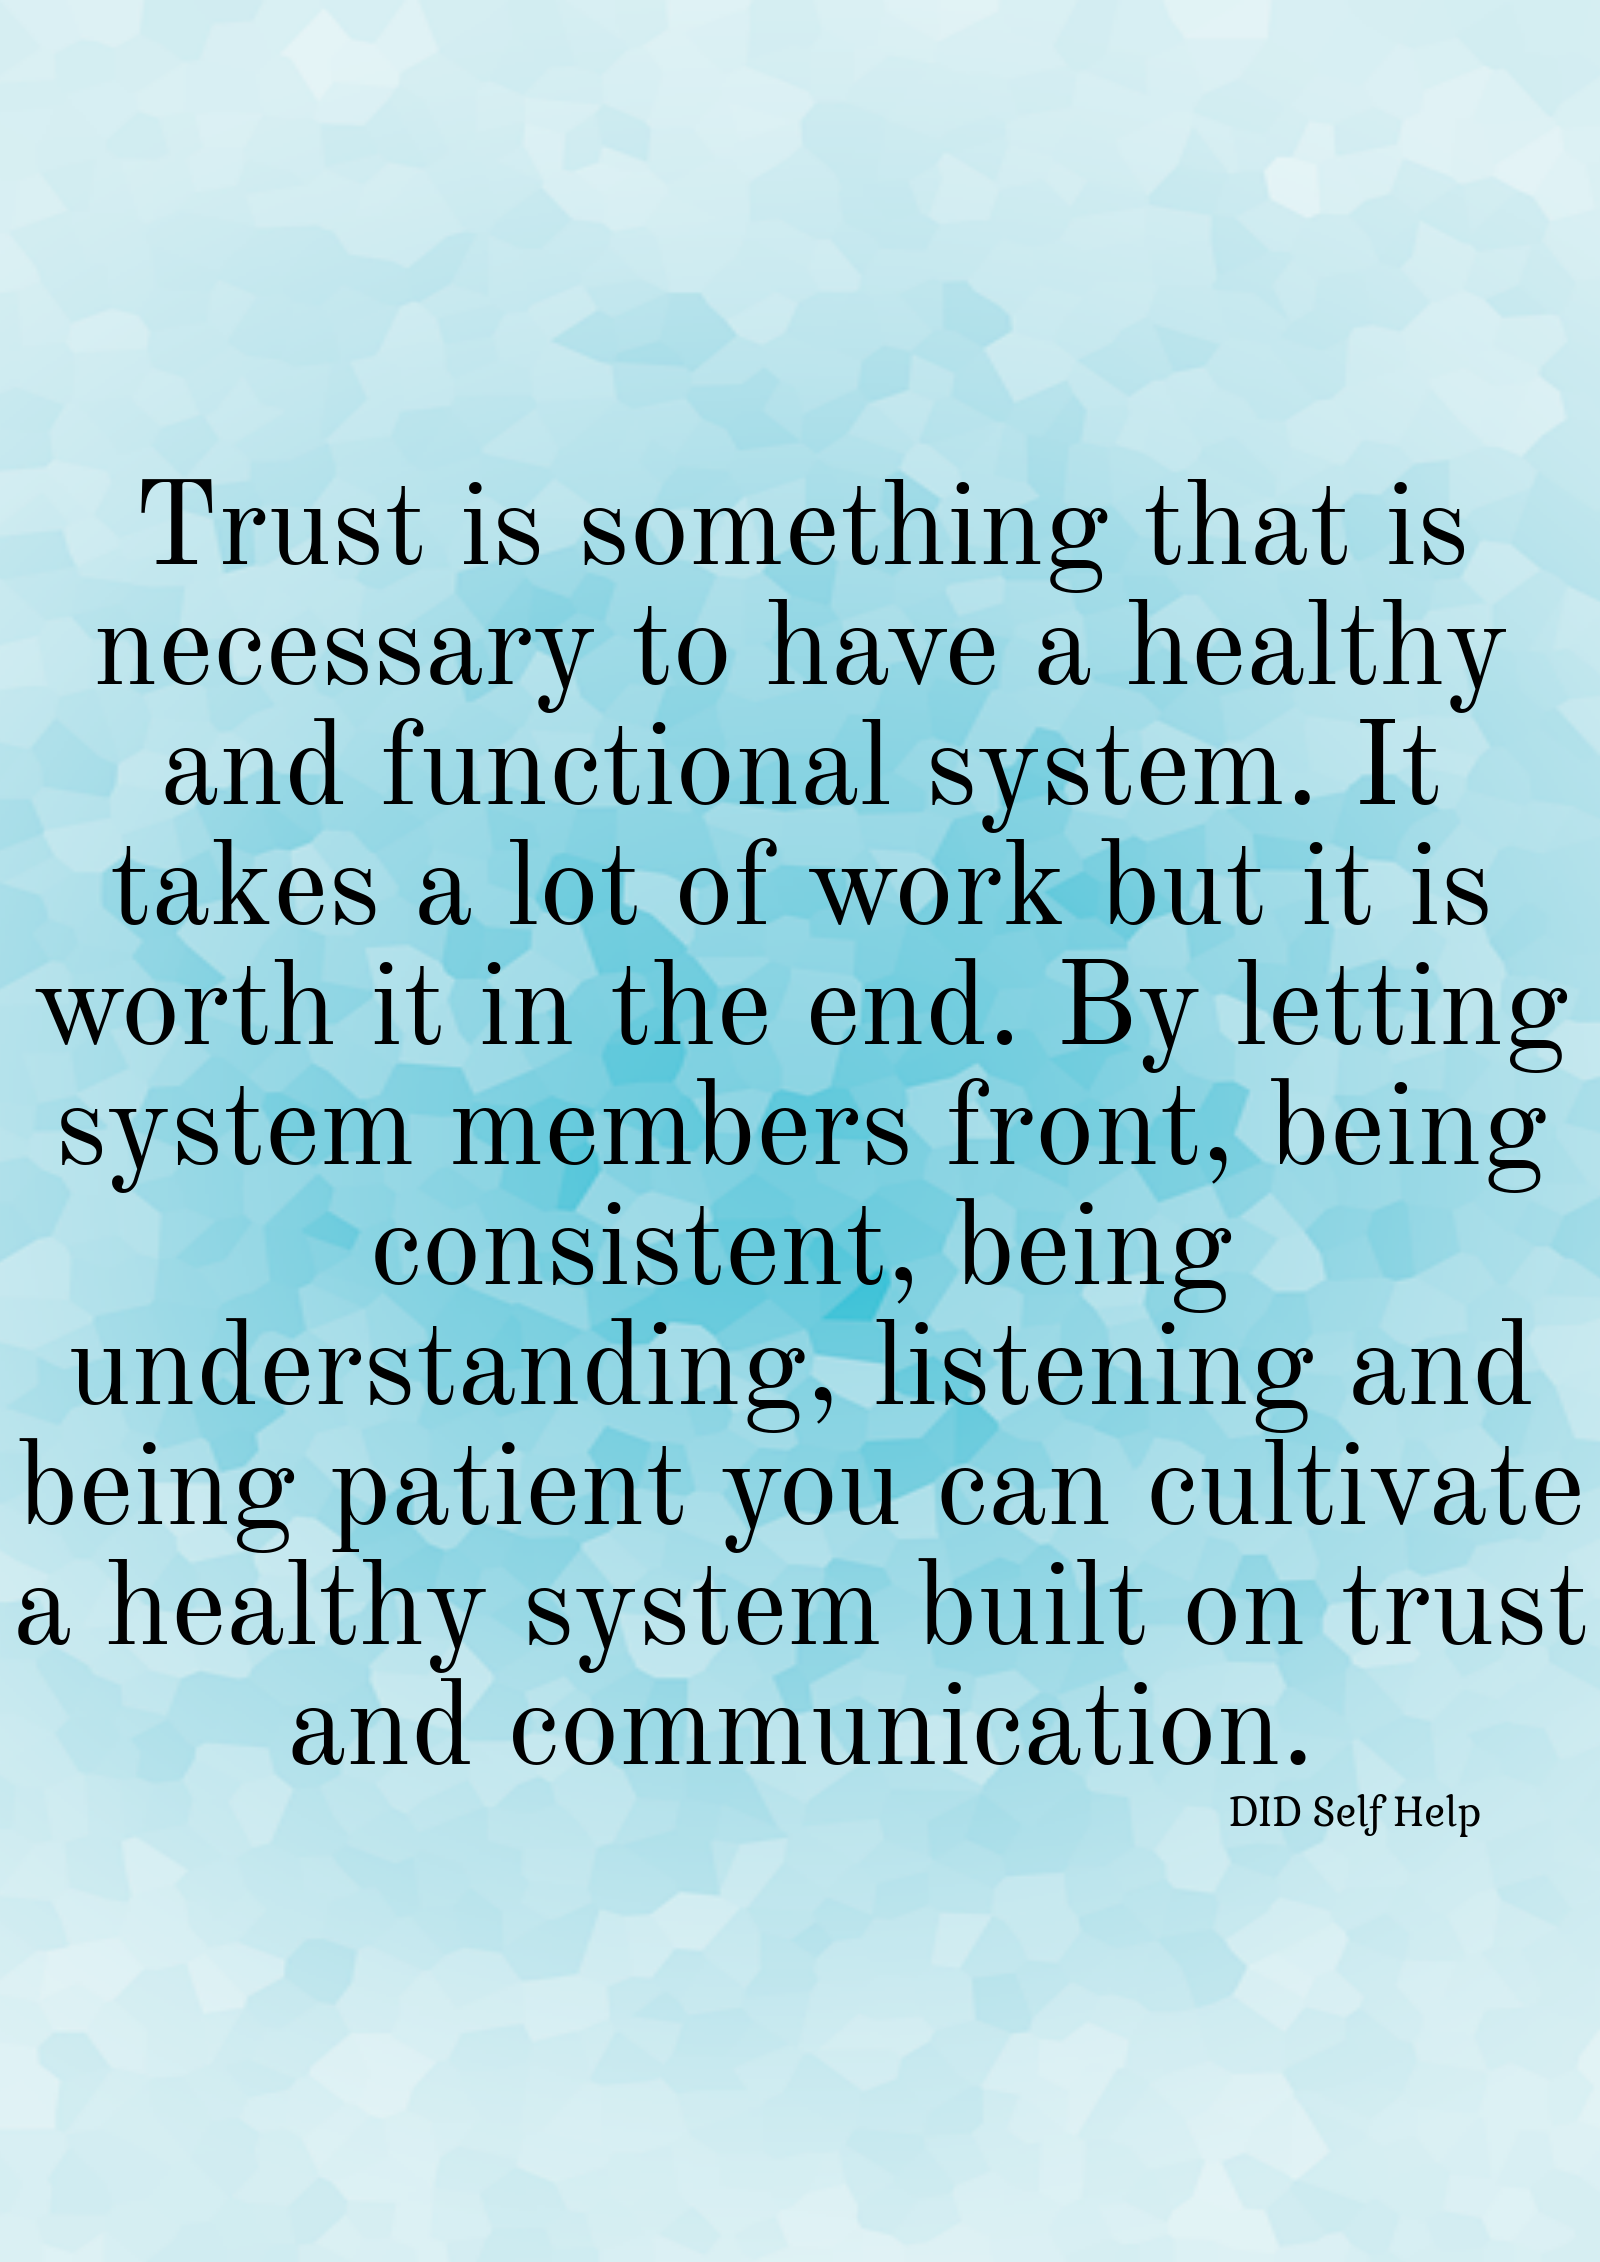 """A blue photo that says """"Trust is something that is necessary to have a healthy and functional system. It takes a lot of work but it is worth it in the end. By letting system members front, being consistent, being understanding, listening and being patient you can cultivate a healthy system built on trust and communication."""""""